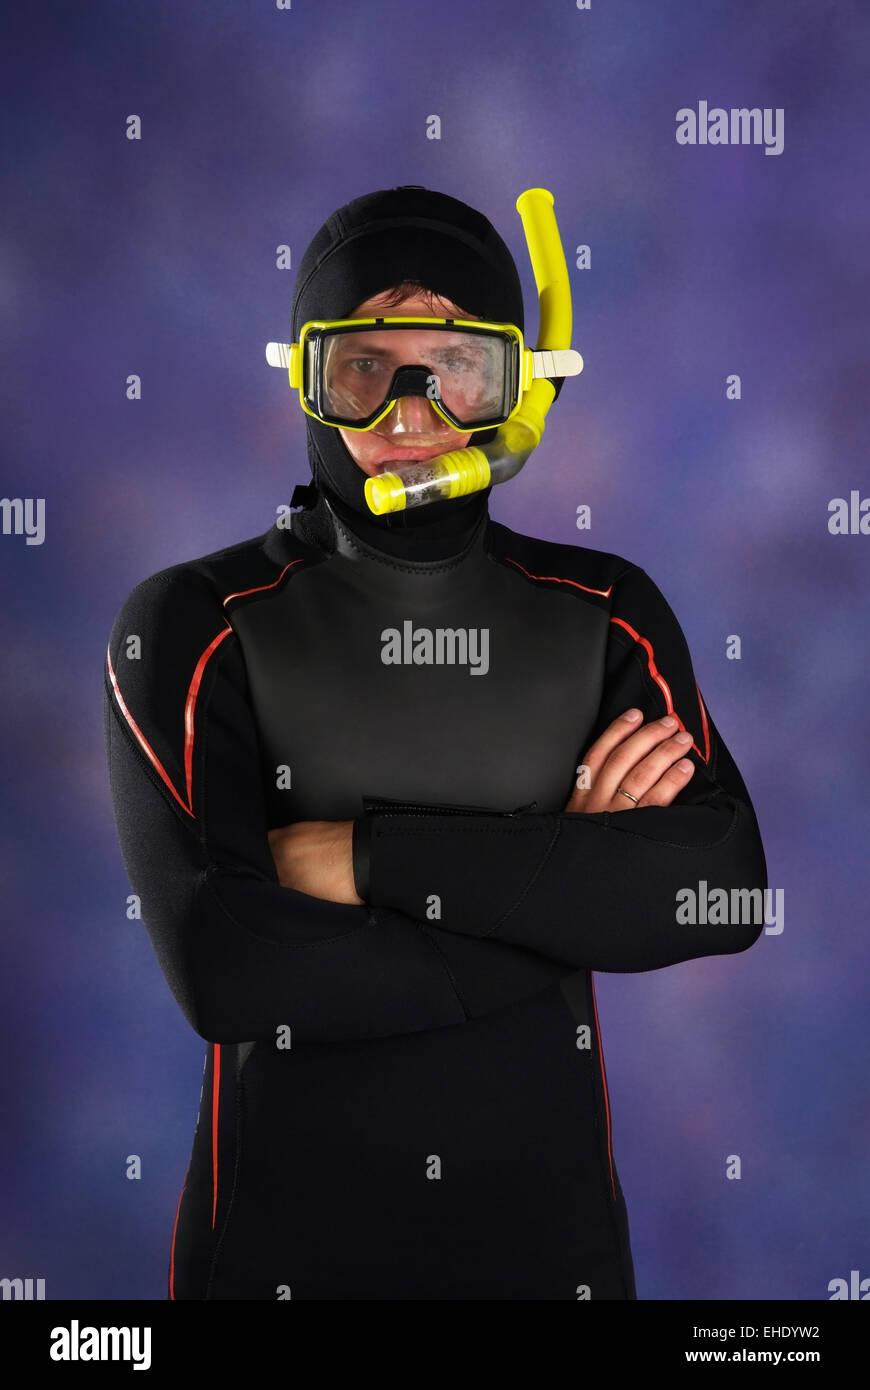 Underwater diver in studio Stock Photo